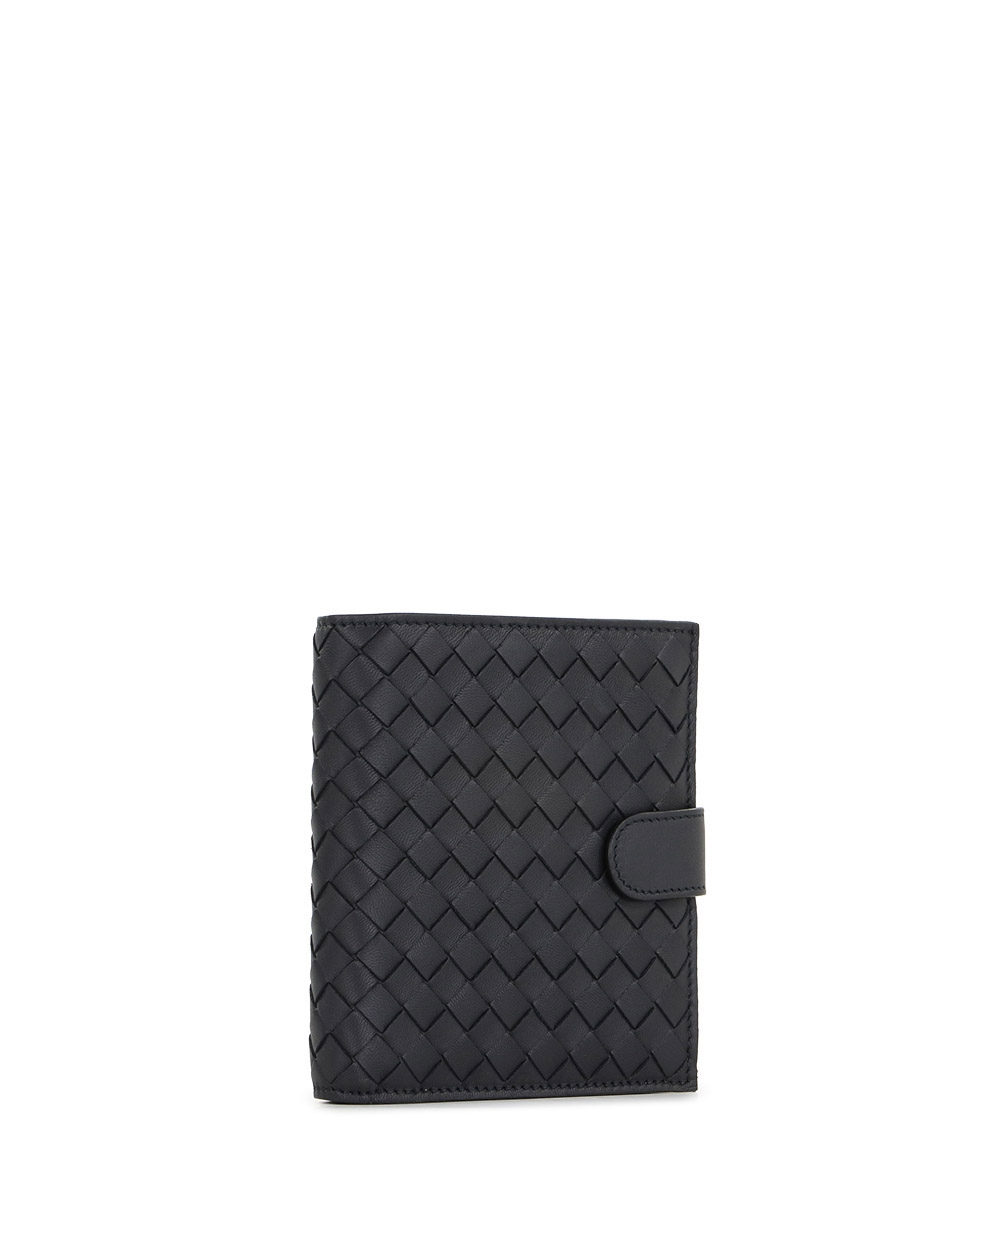 Woven Leather Short Wallet 4